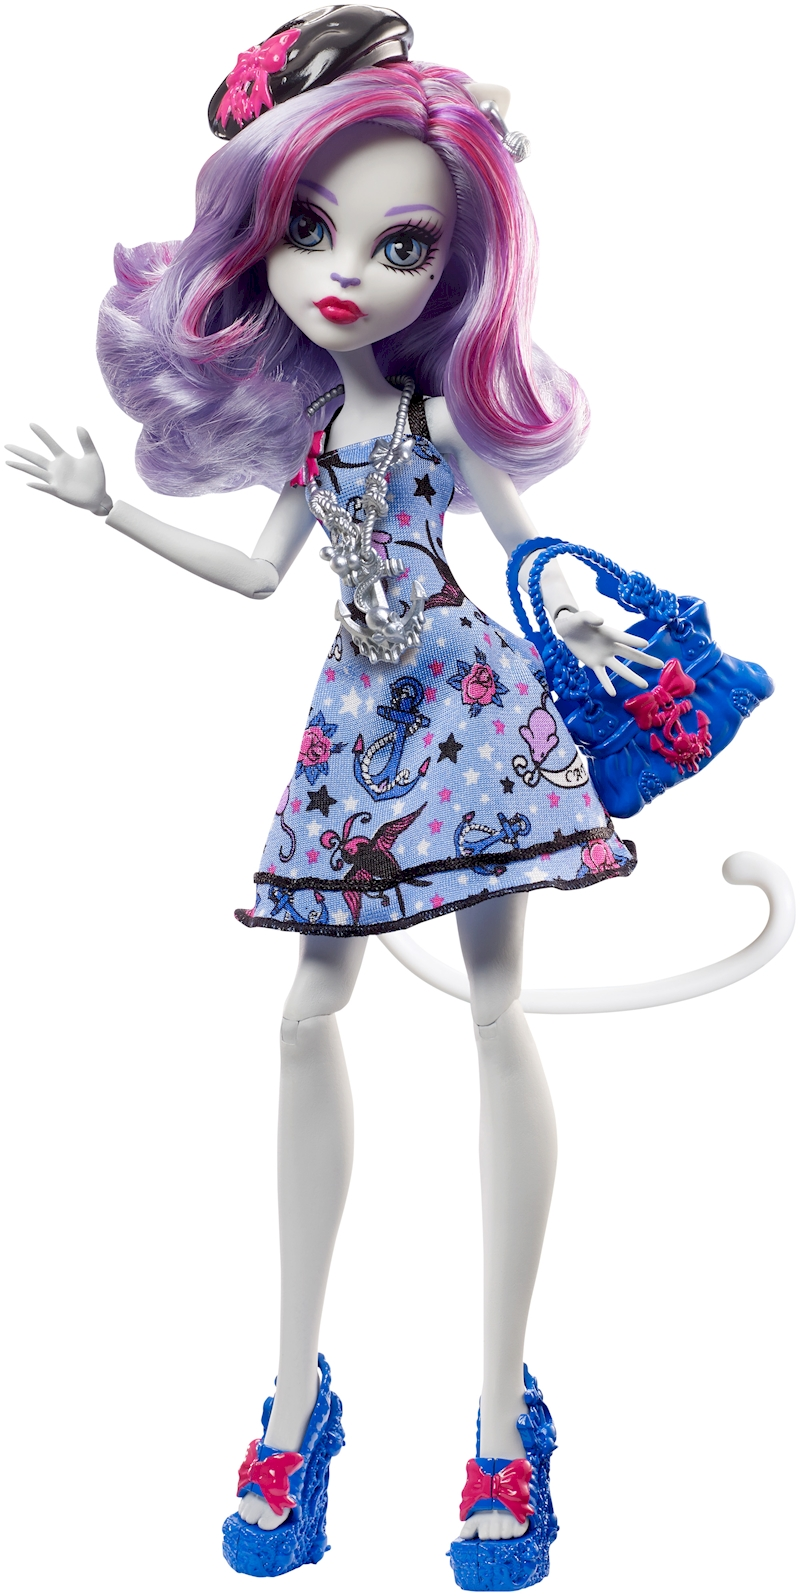 Catrine demew popular catrine demew doll buy cheap catrine demew doll - Monster High Shriekwrecked Shriek Mates Catrine Demew Doll Shop Monster High Doll Accessories Playsets Toys Monster High